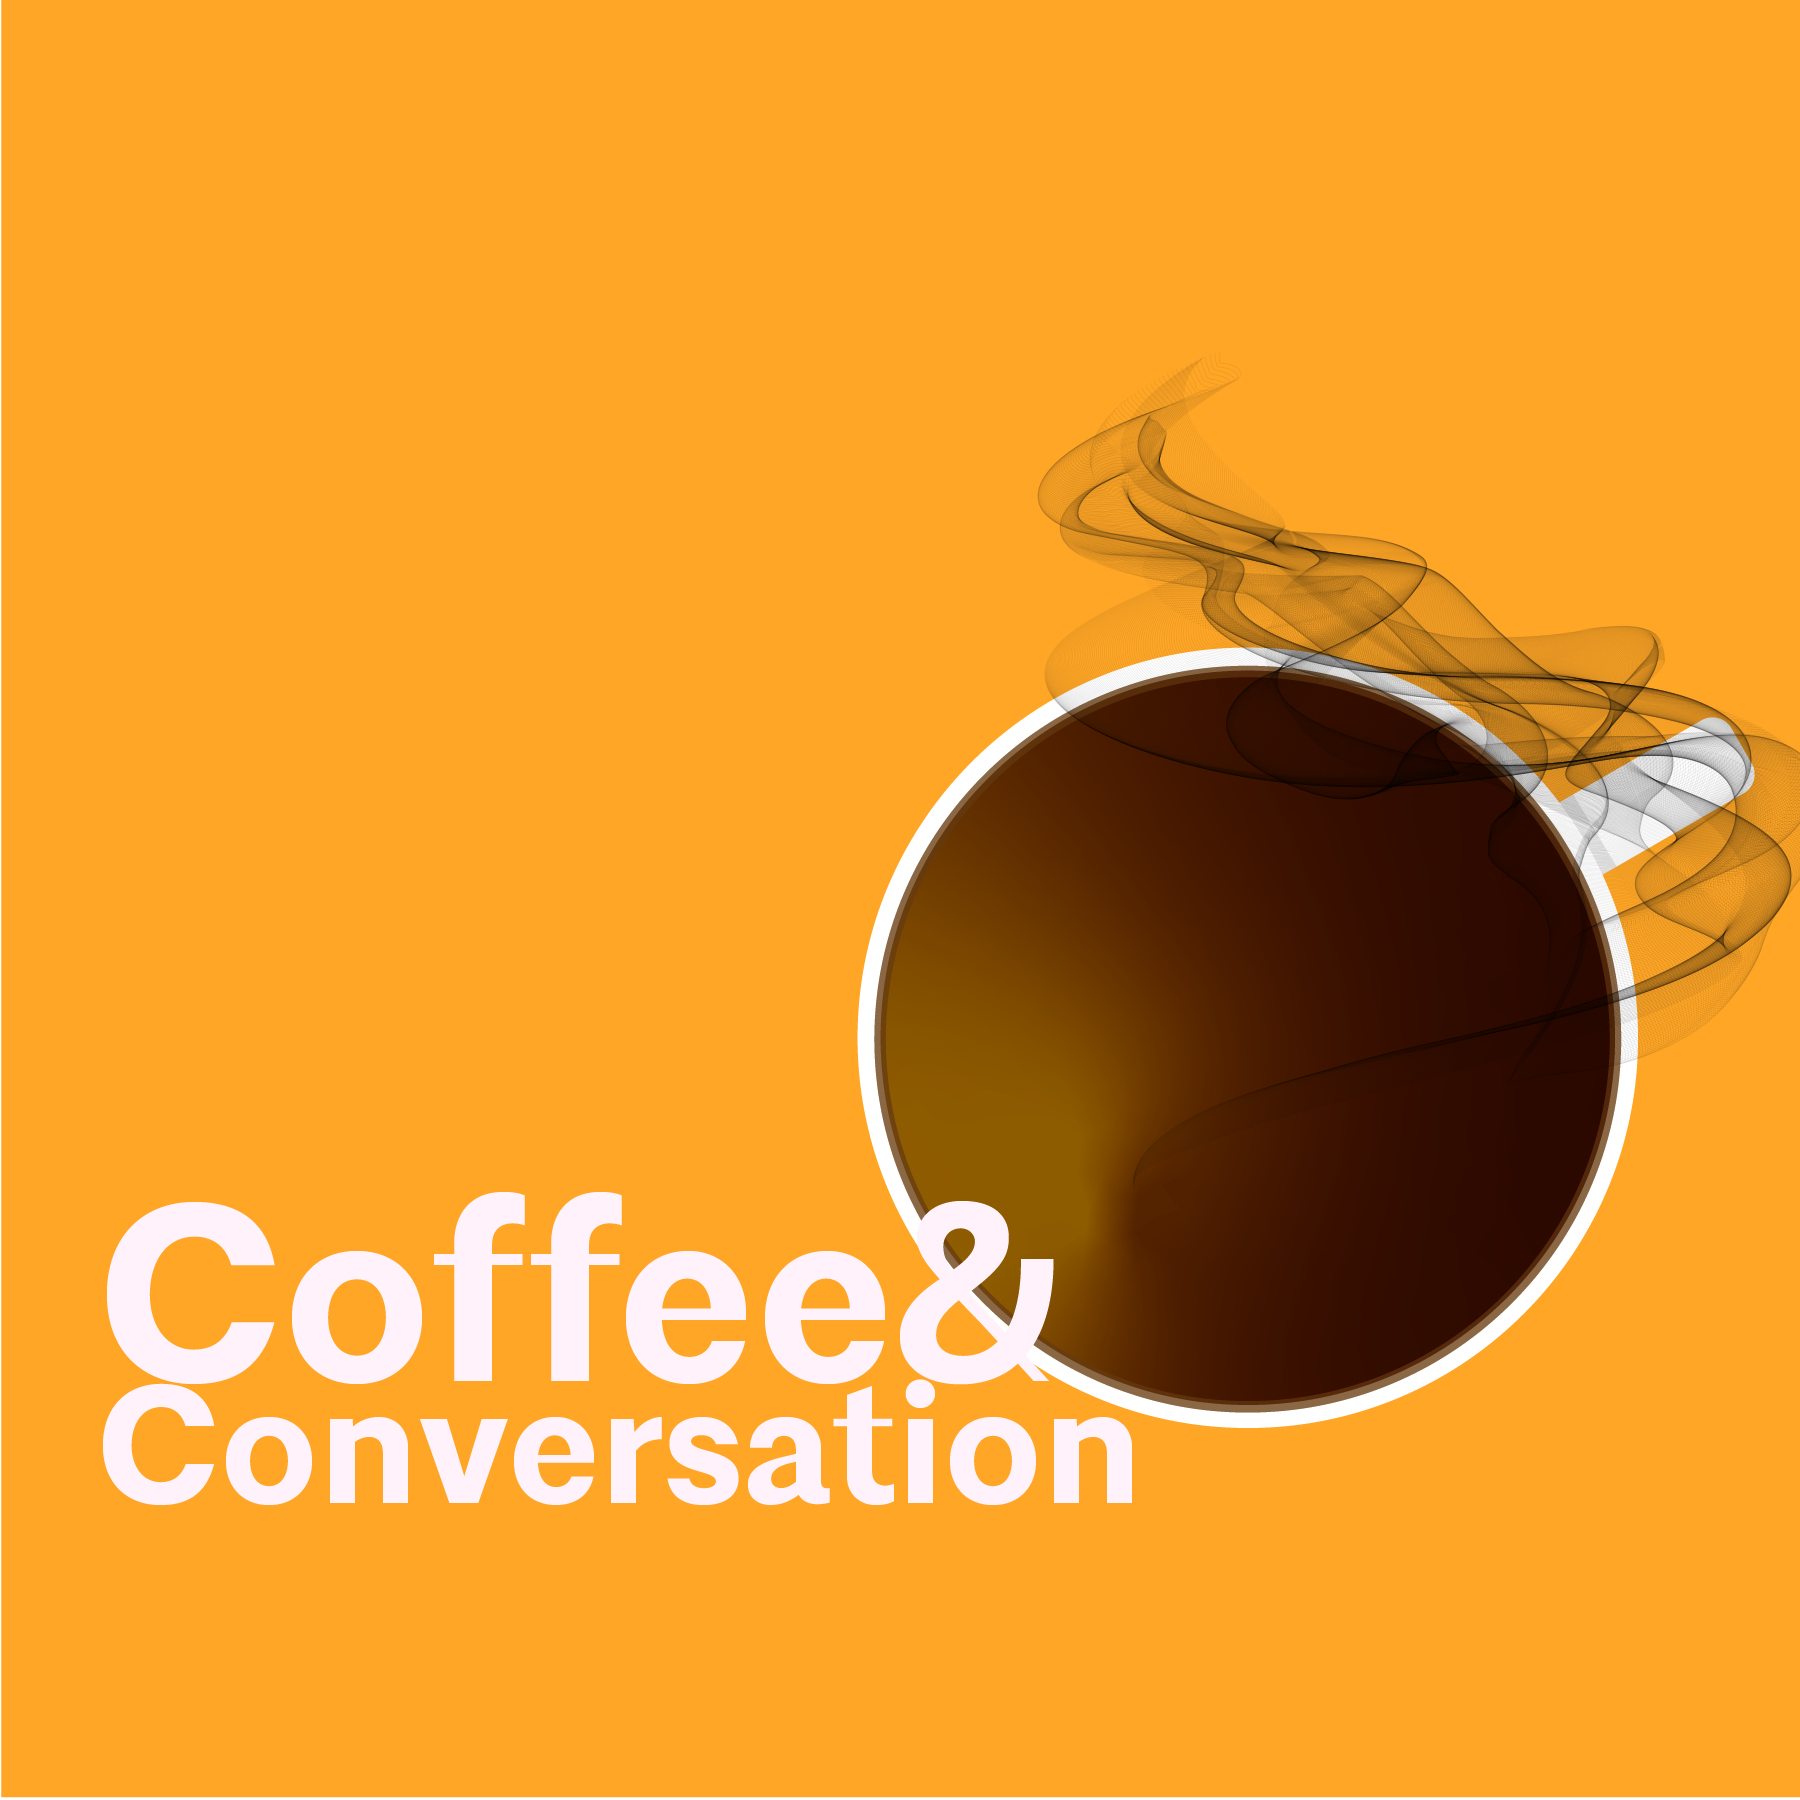 Coffee & Conversation: City Council Member Lee Kleinman